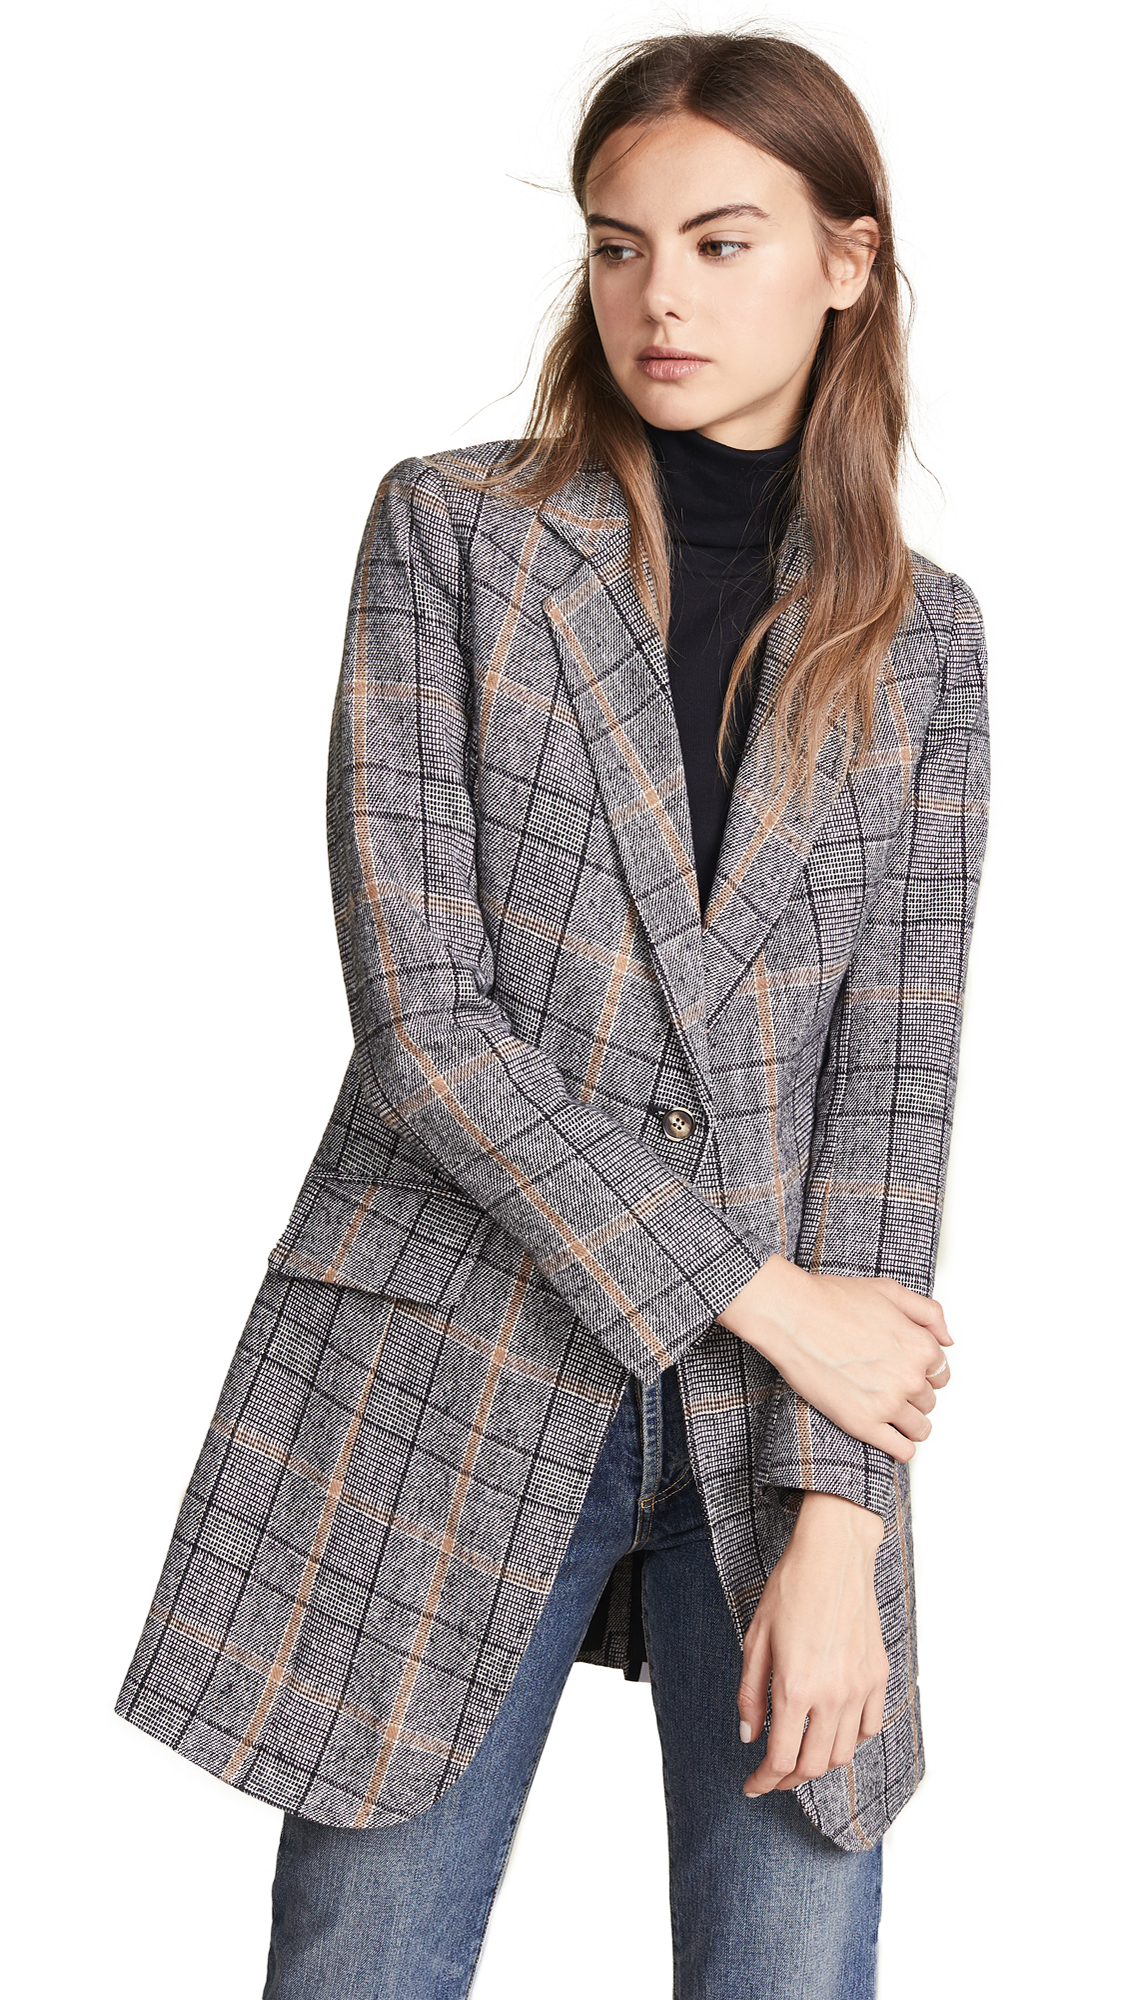 LAVEER Long Sharp Jacket